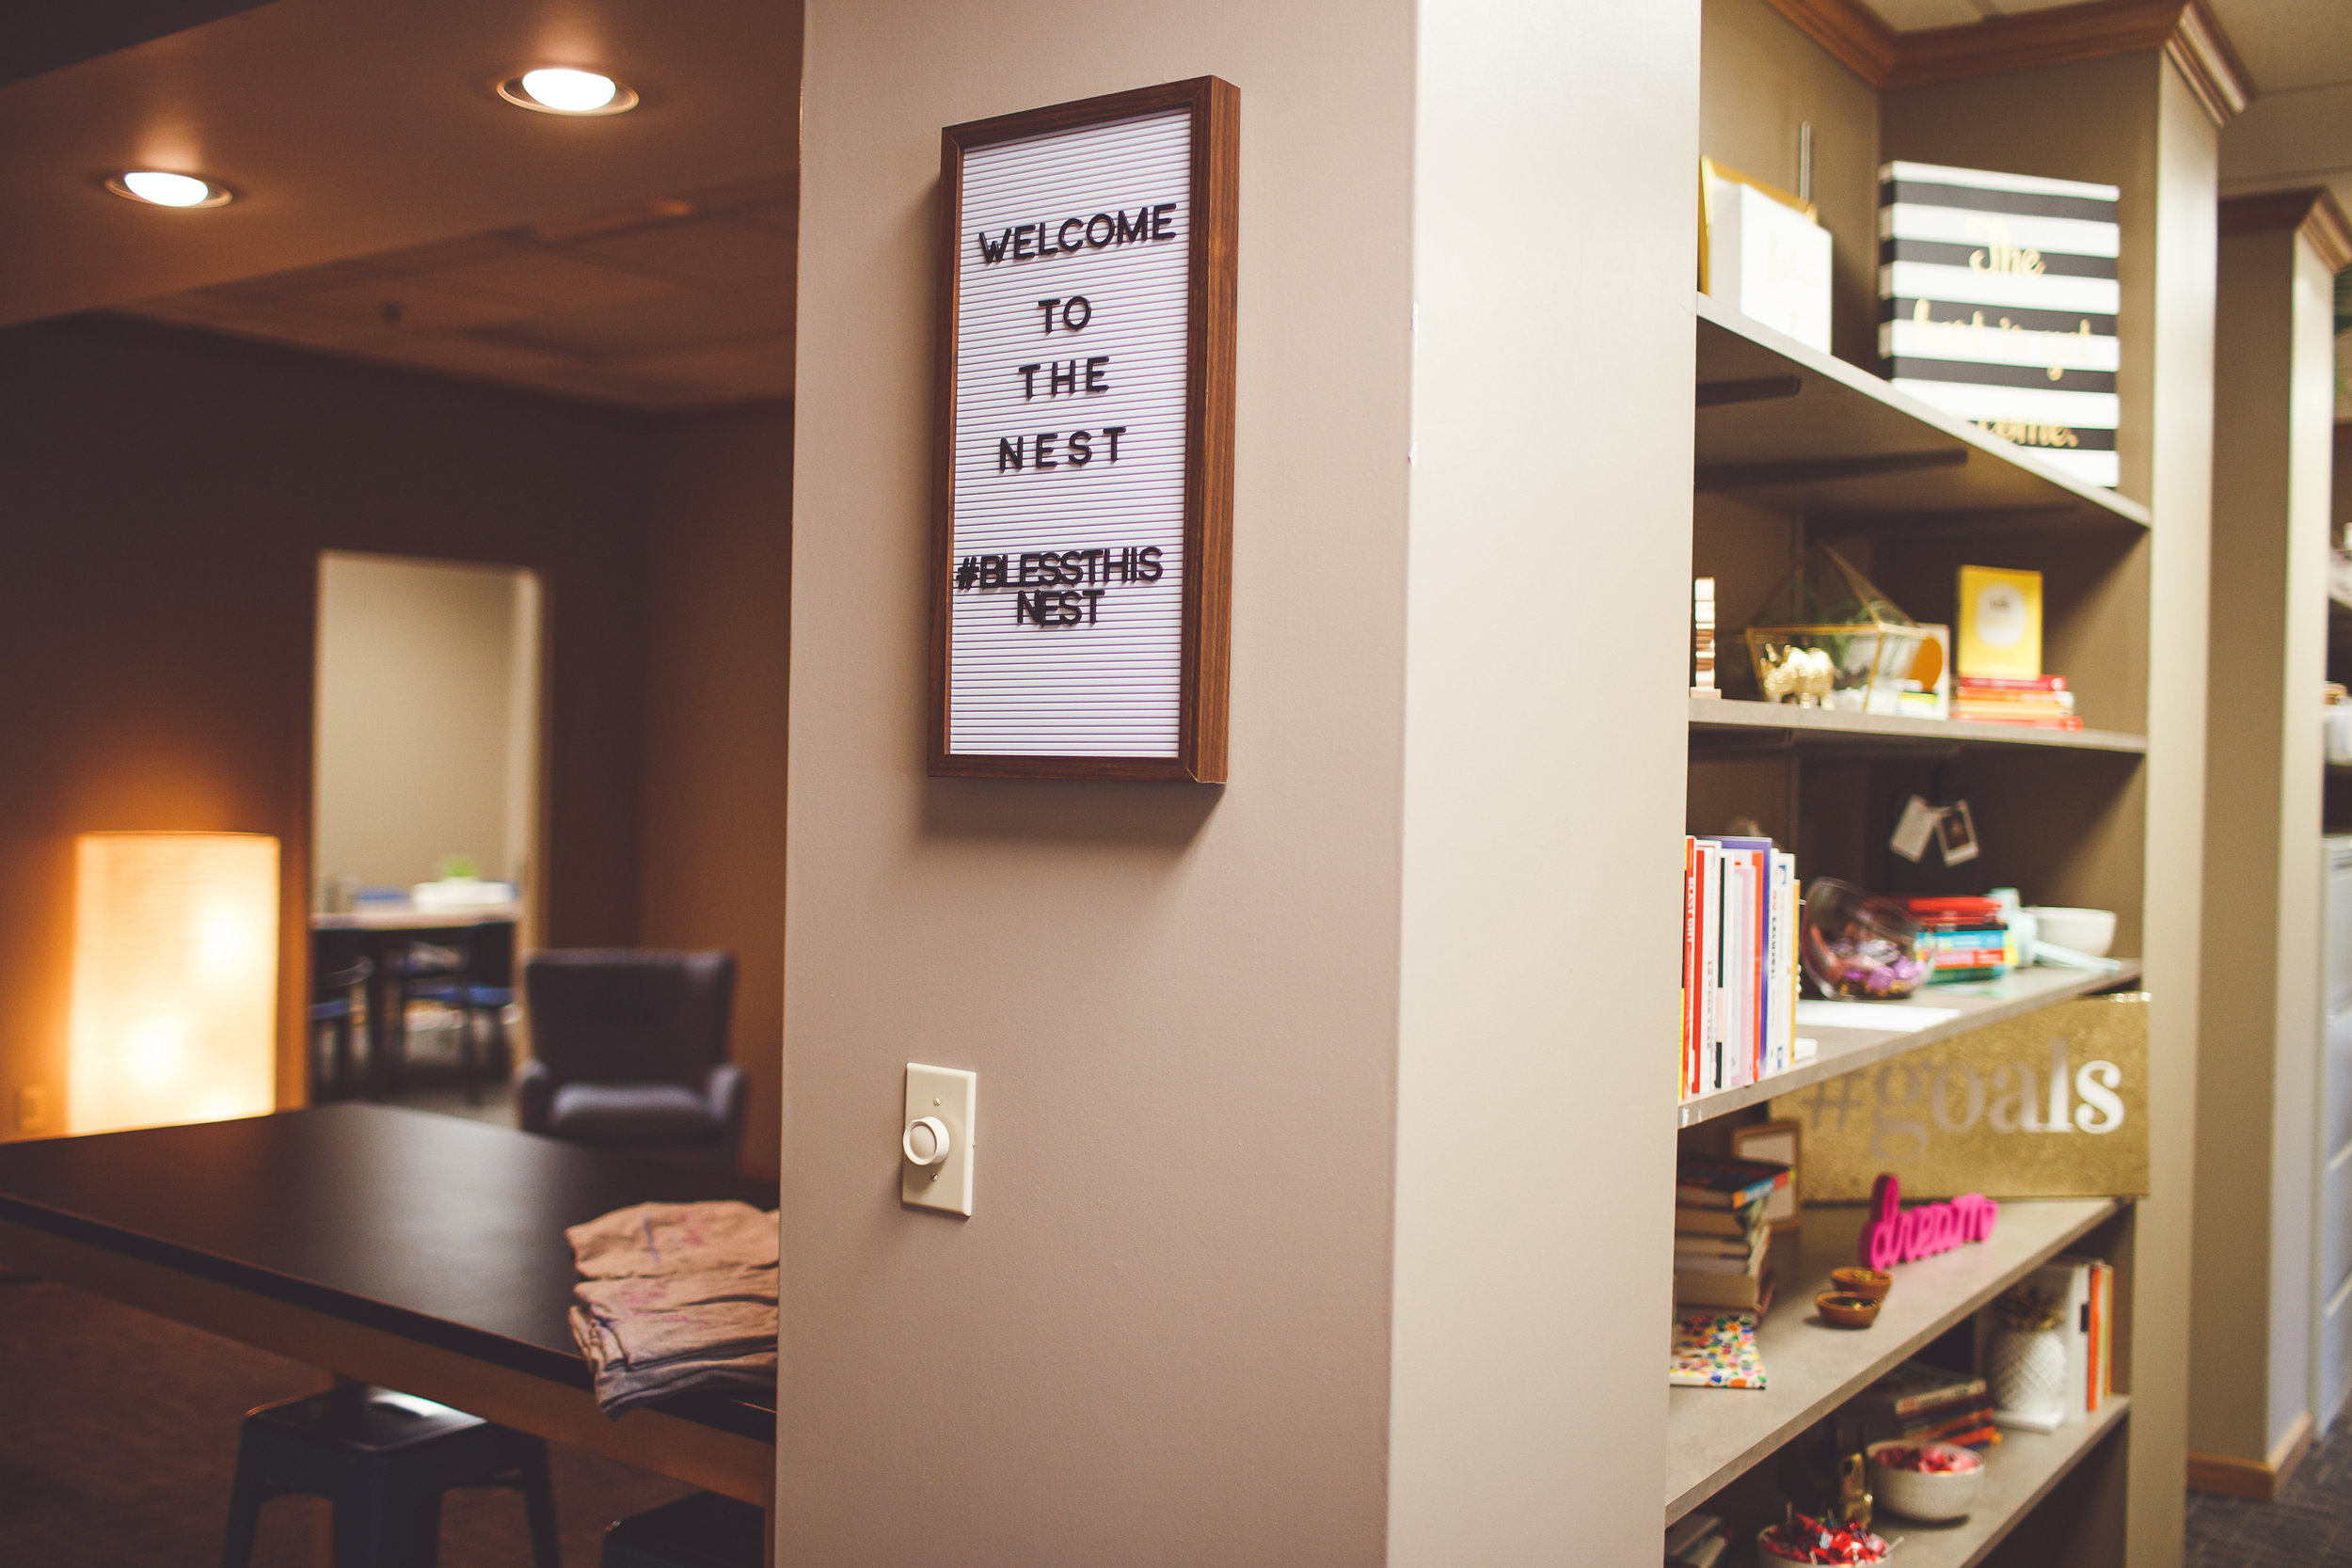 COWORKING MEMBERSHIPS - We all know there are so many distractions when working at home or the coffee shop. Come to The Nest where there are no dishes you need to do and the coffee is free.$99/month